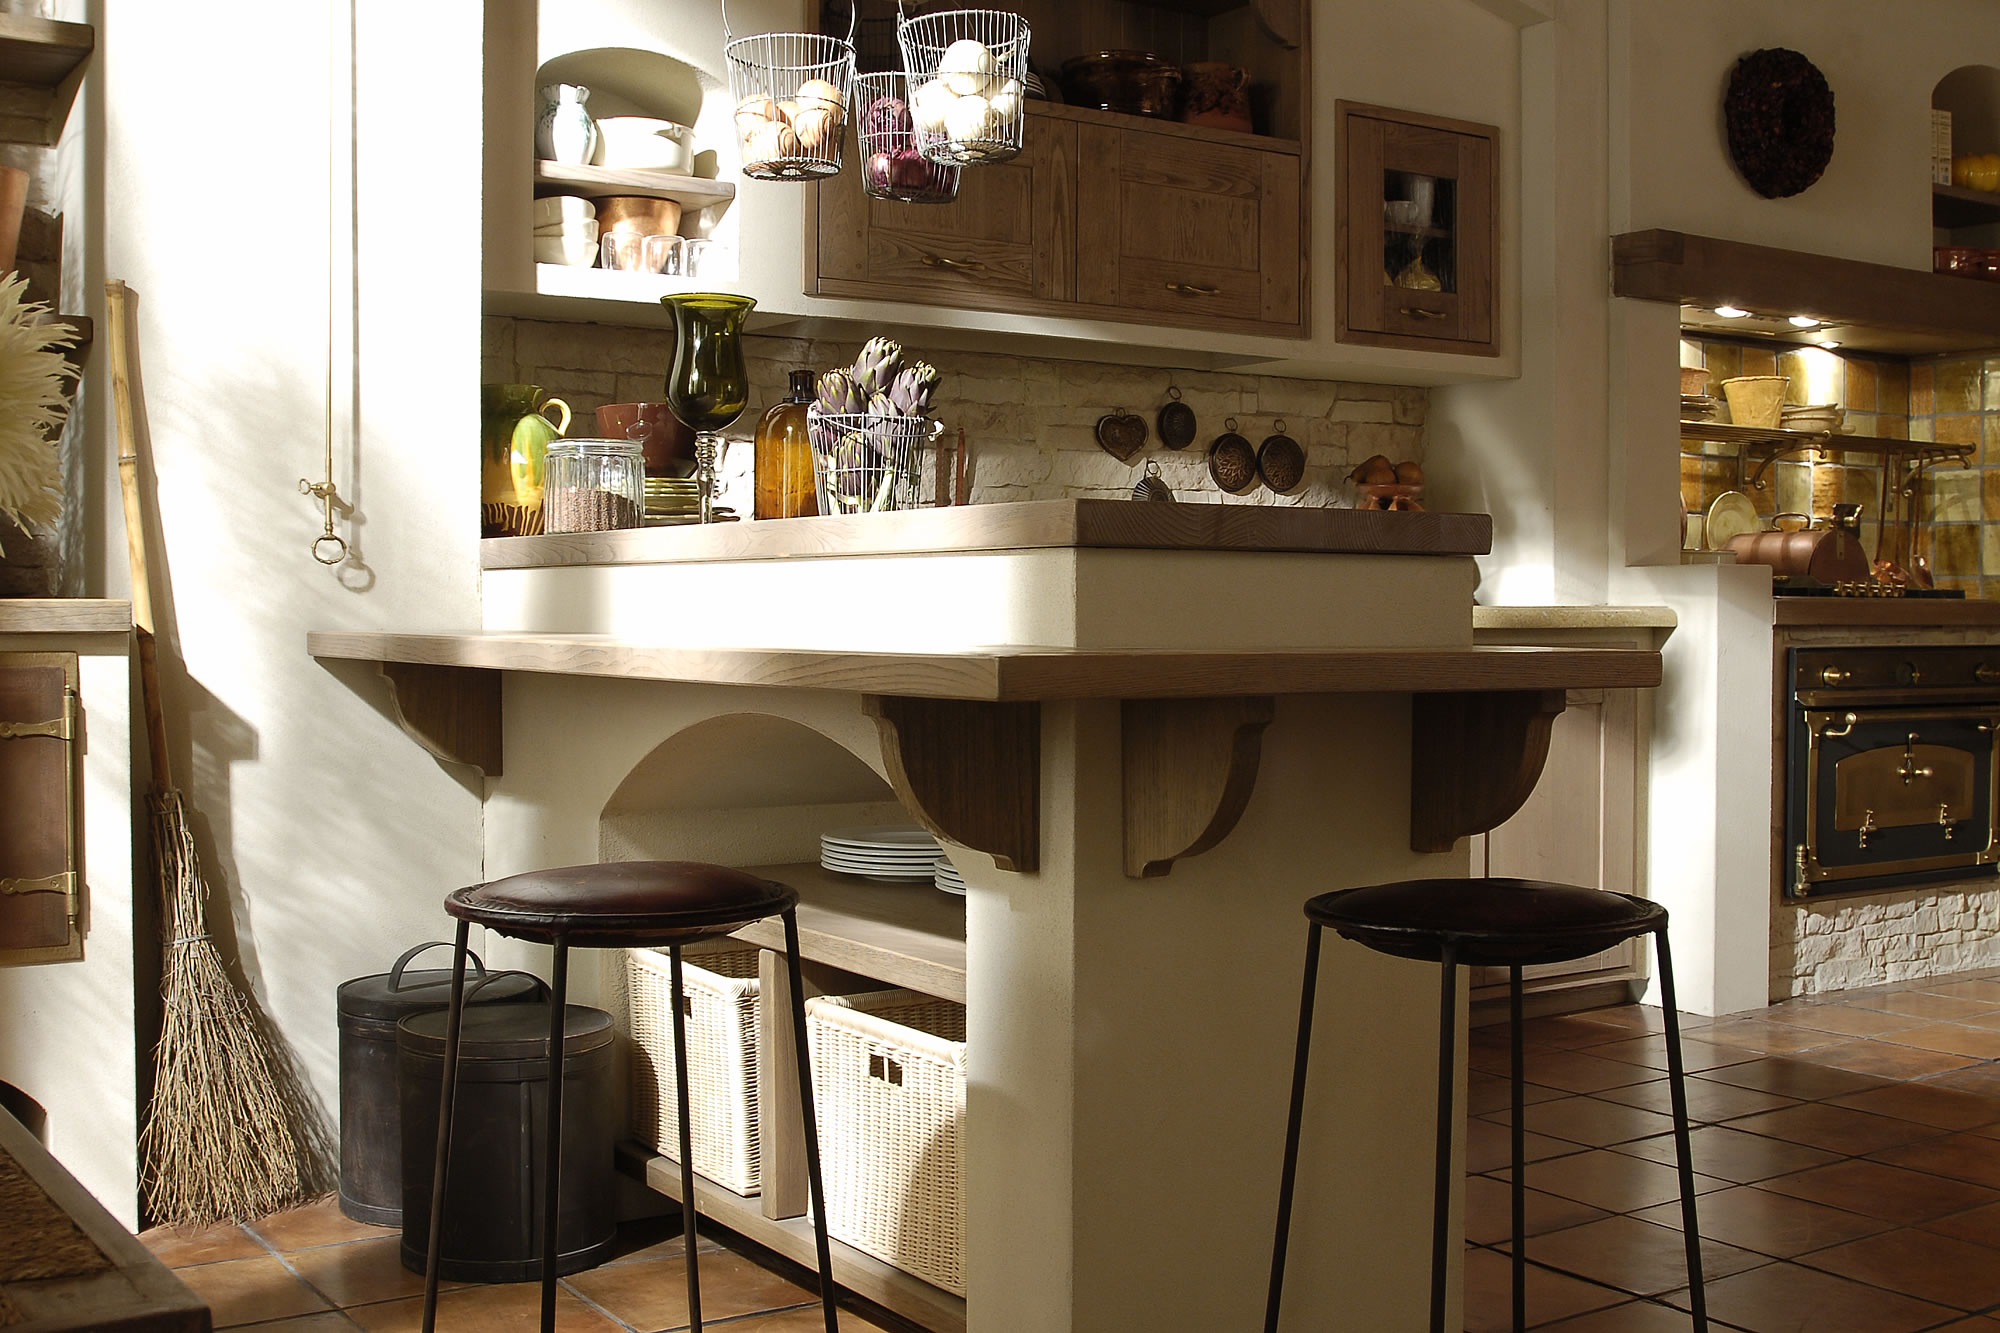 Piastrelle decolate per cucina country - Cucine country chic ...